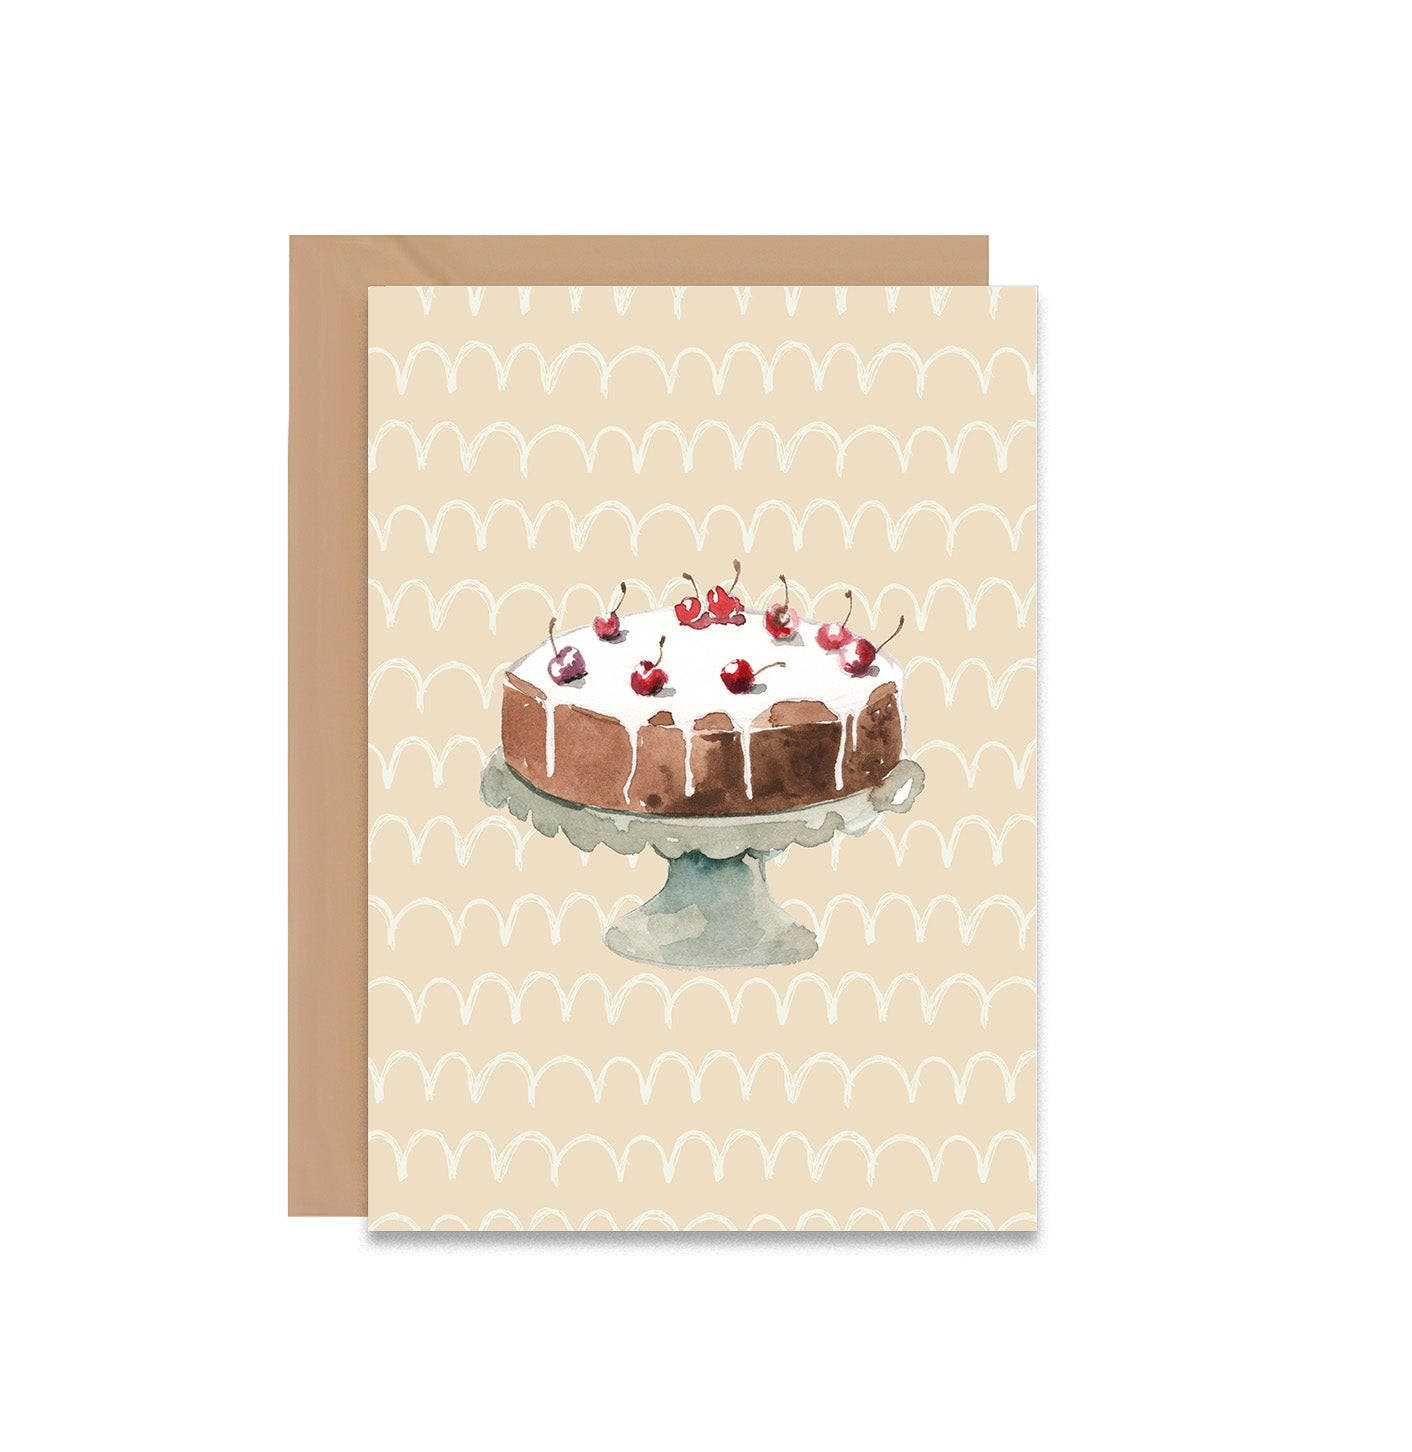 Chocolate cake with cherries on top blank greeting card mode prints chocolate cake with cherries on top blank greeting card m4hsunfo